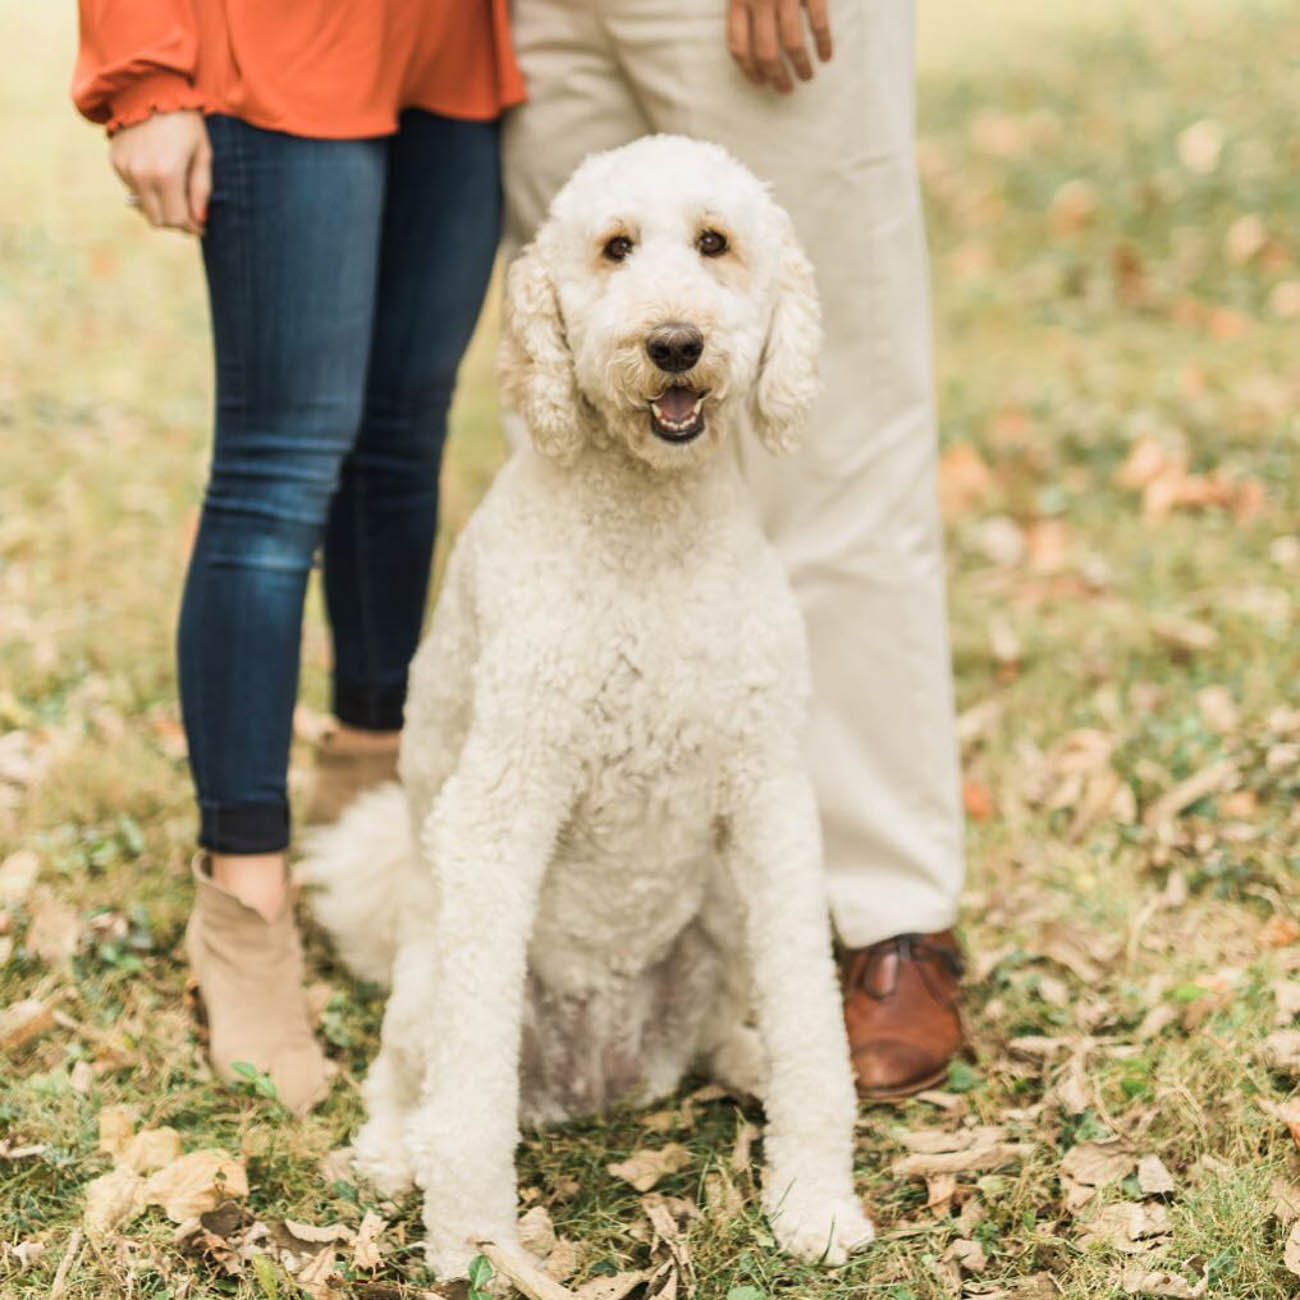 Emmy Lou is not just a local Goldendoodle, but a local hero, too. This sweet pup is a therapy dog at Cincinnati Children's Hospital where she brings joy to people who need it most. / Image courtesy of Instagram user @emmylou.thedoodle // Published: 11.28.18